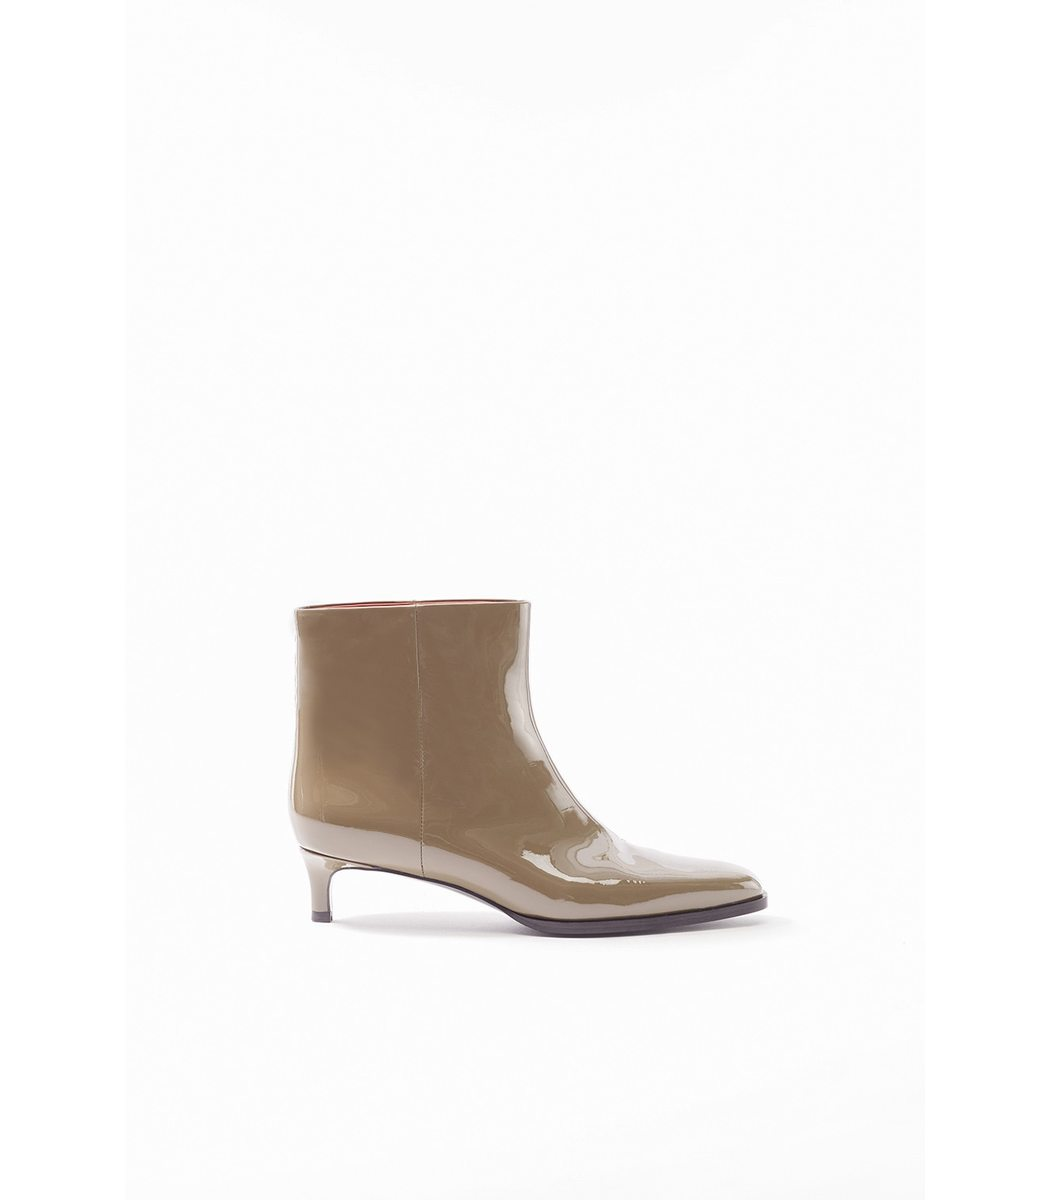 Fatigues Agatha Patent Bootie